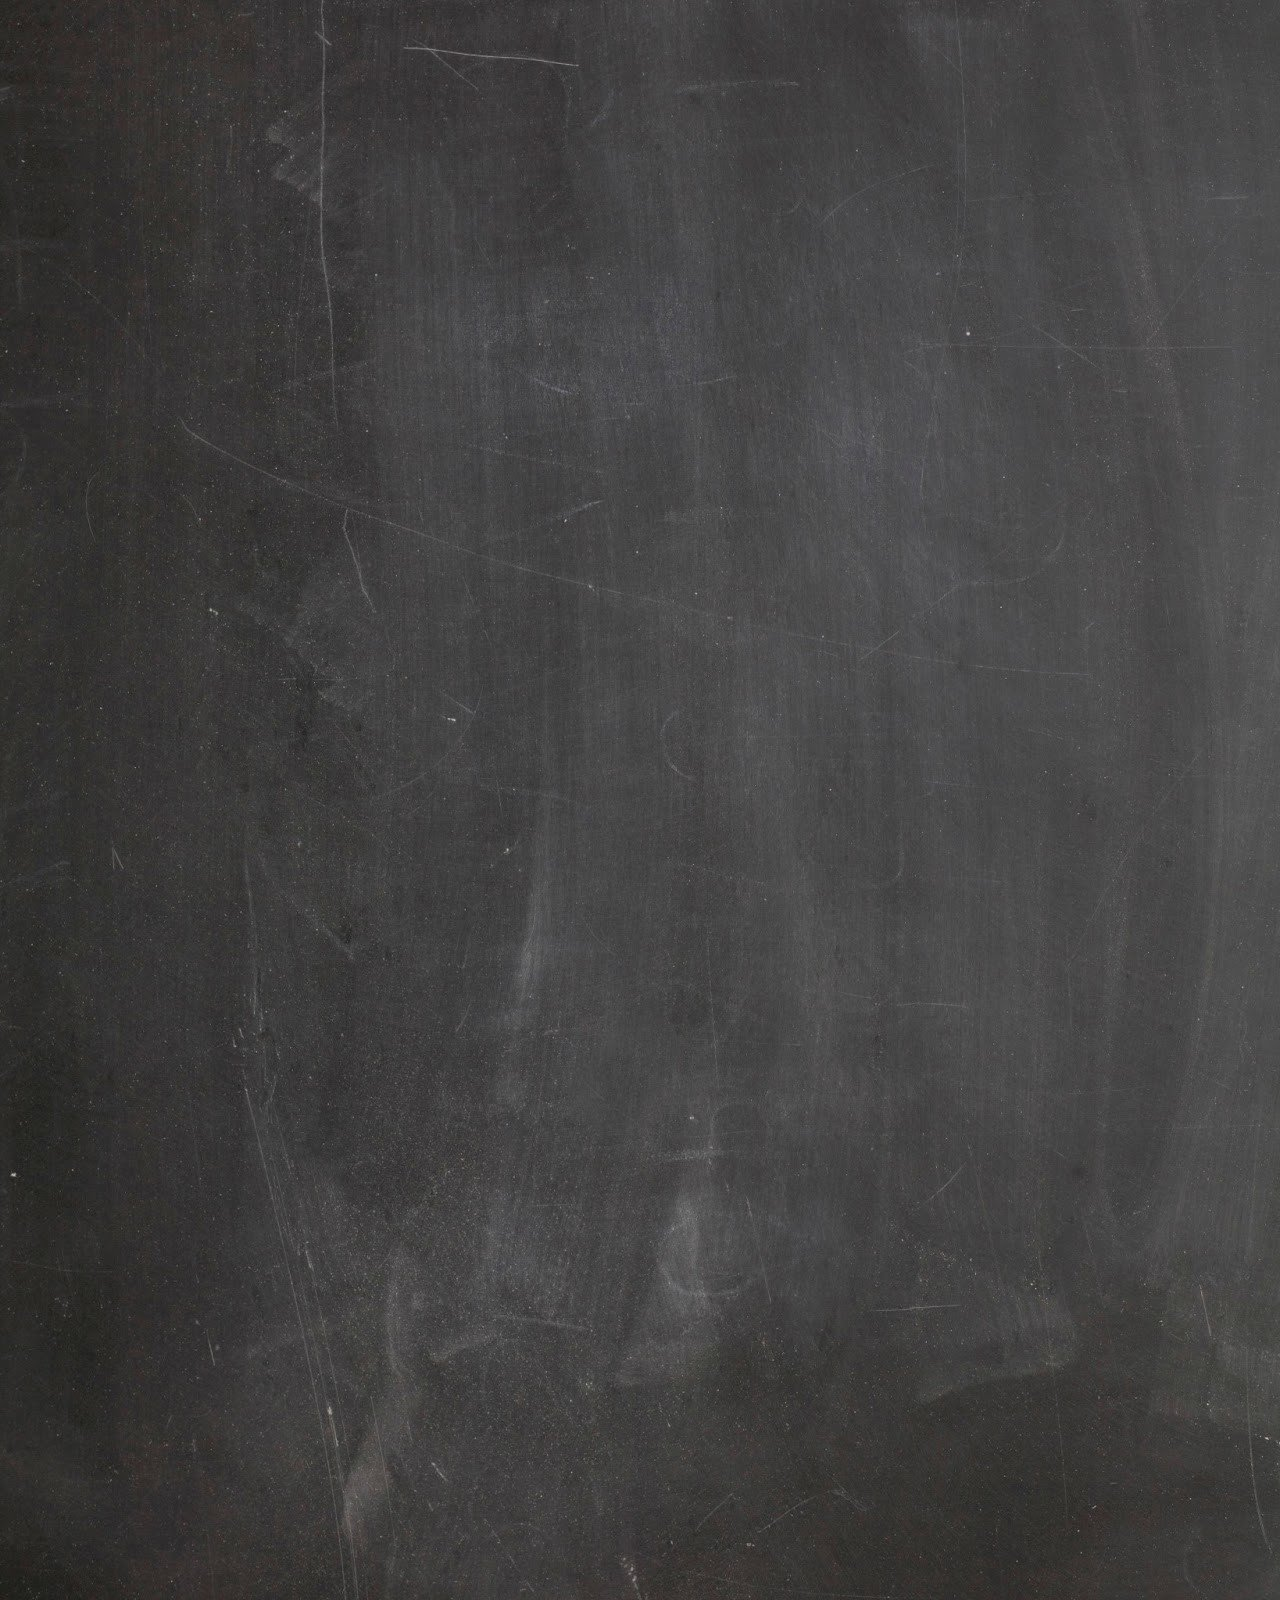 Chalkboard Template Microsoft Word A List Of the Best Free Chalkboard Fonts and Free